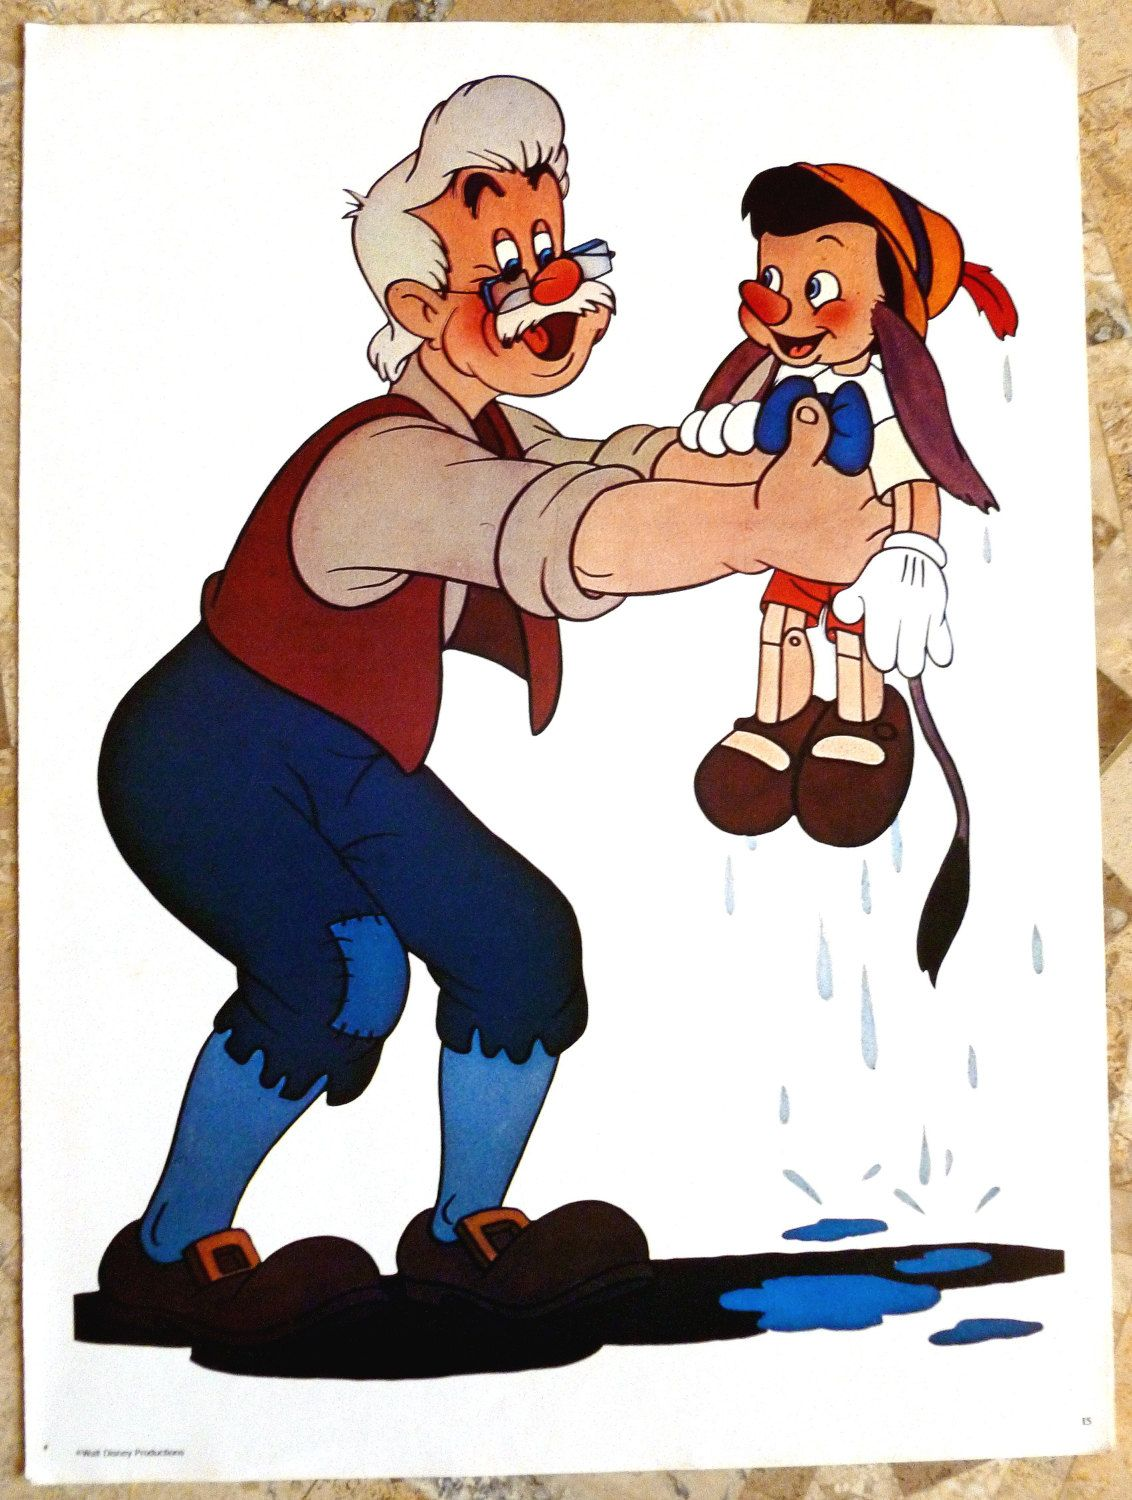 Vintage Disney Poster Geppetto And Pinocchio 1970 39 S Mint Condition 15 X 11 Inches Walt Disney Produ Disney Posters Vintage Disney Poster Vintage Disney [ 1500 x 1132 Pixel ]